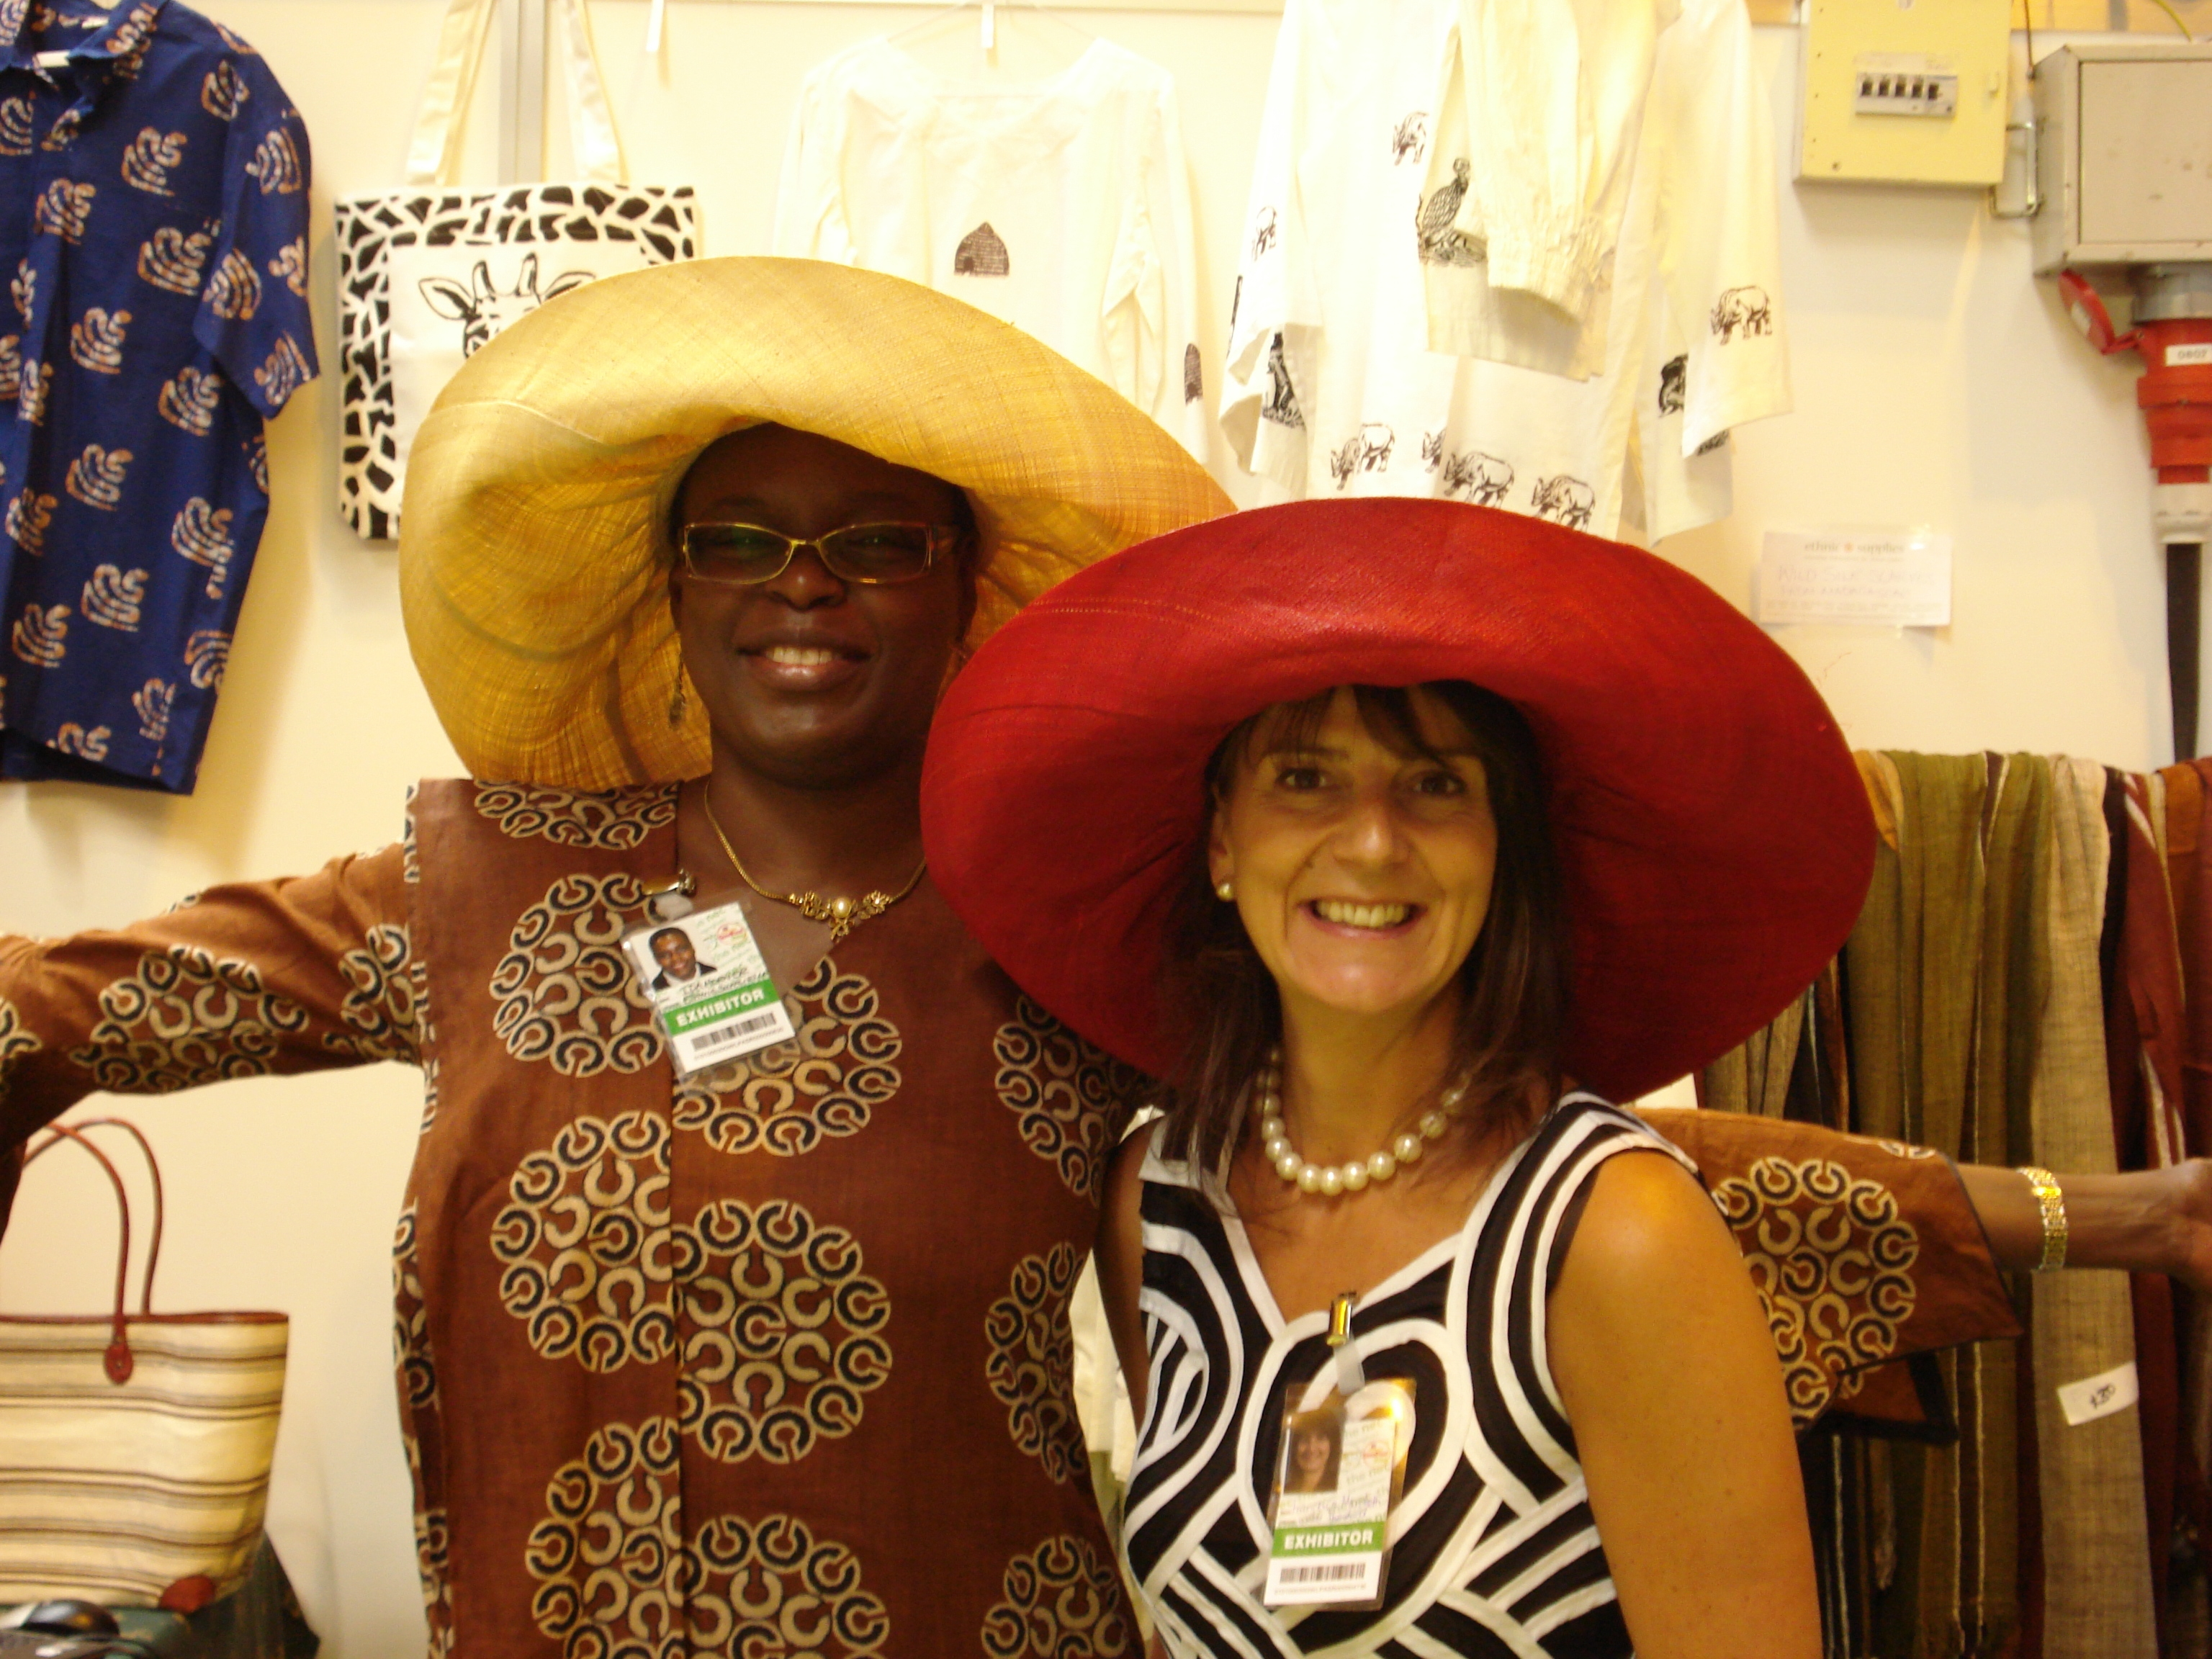 a fellow exhibitor who fell in love with thsoe hats